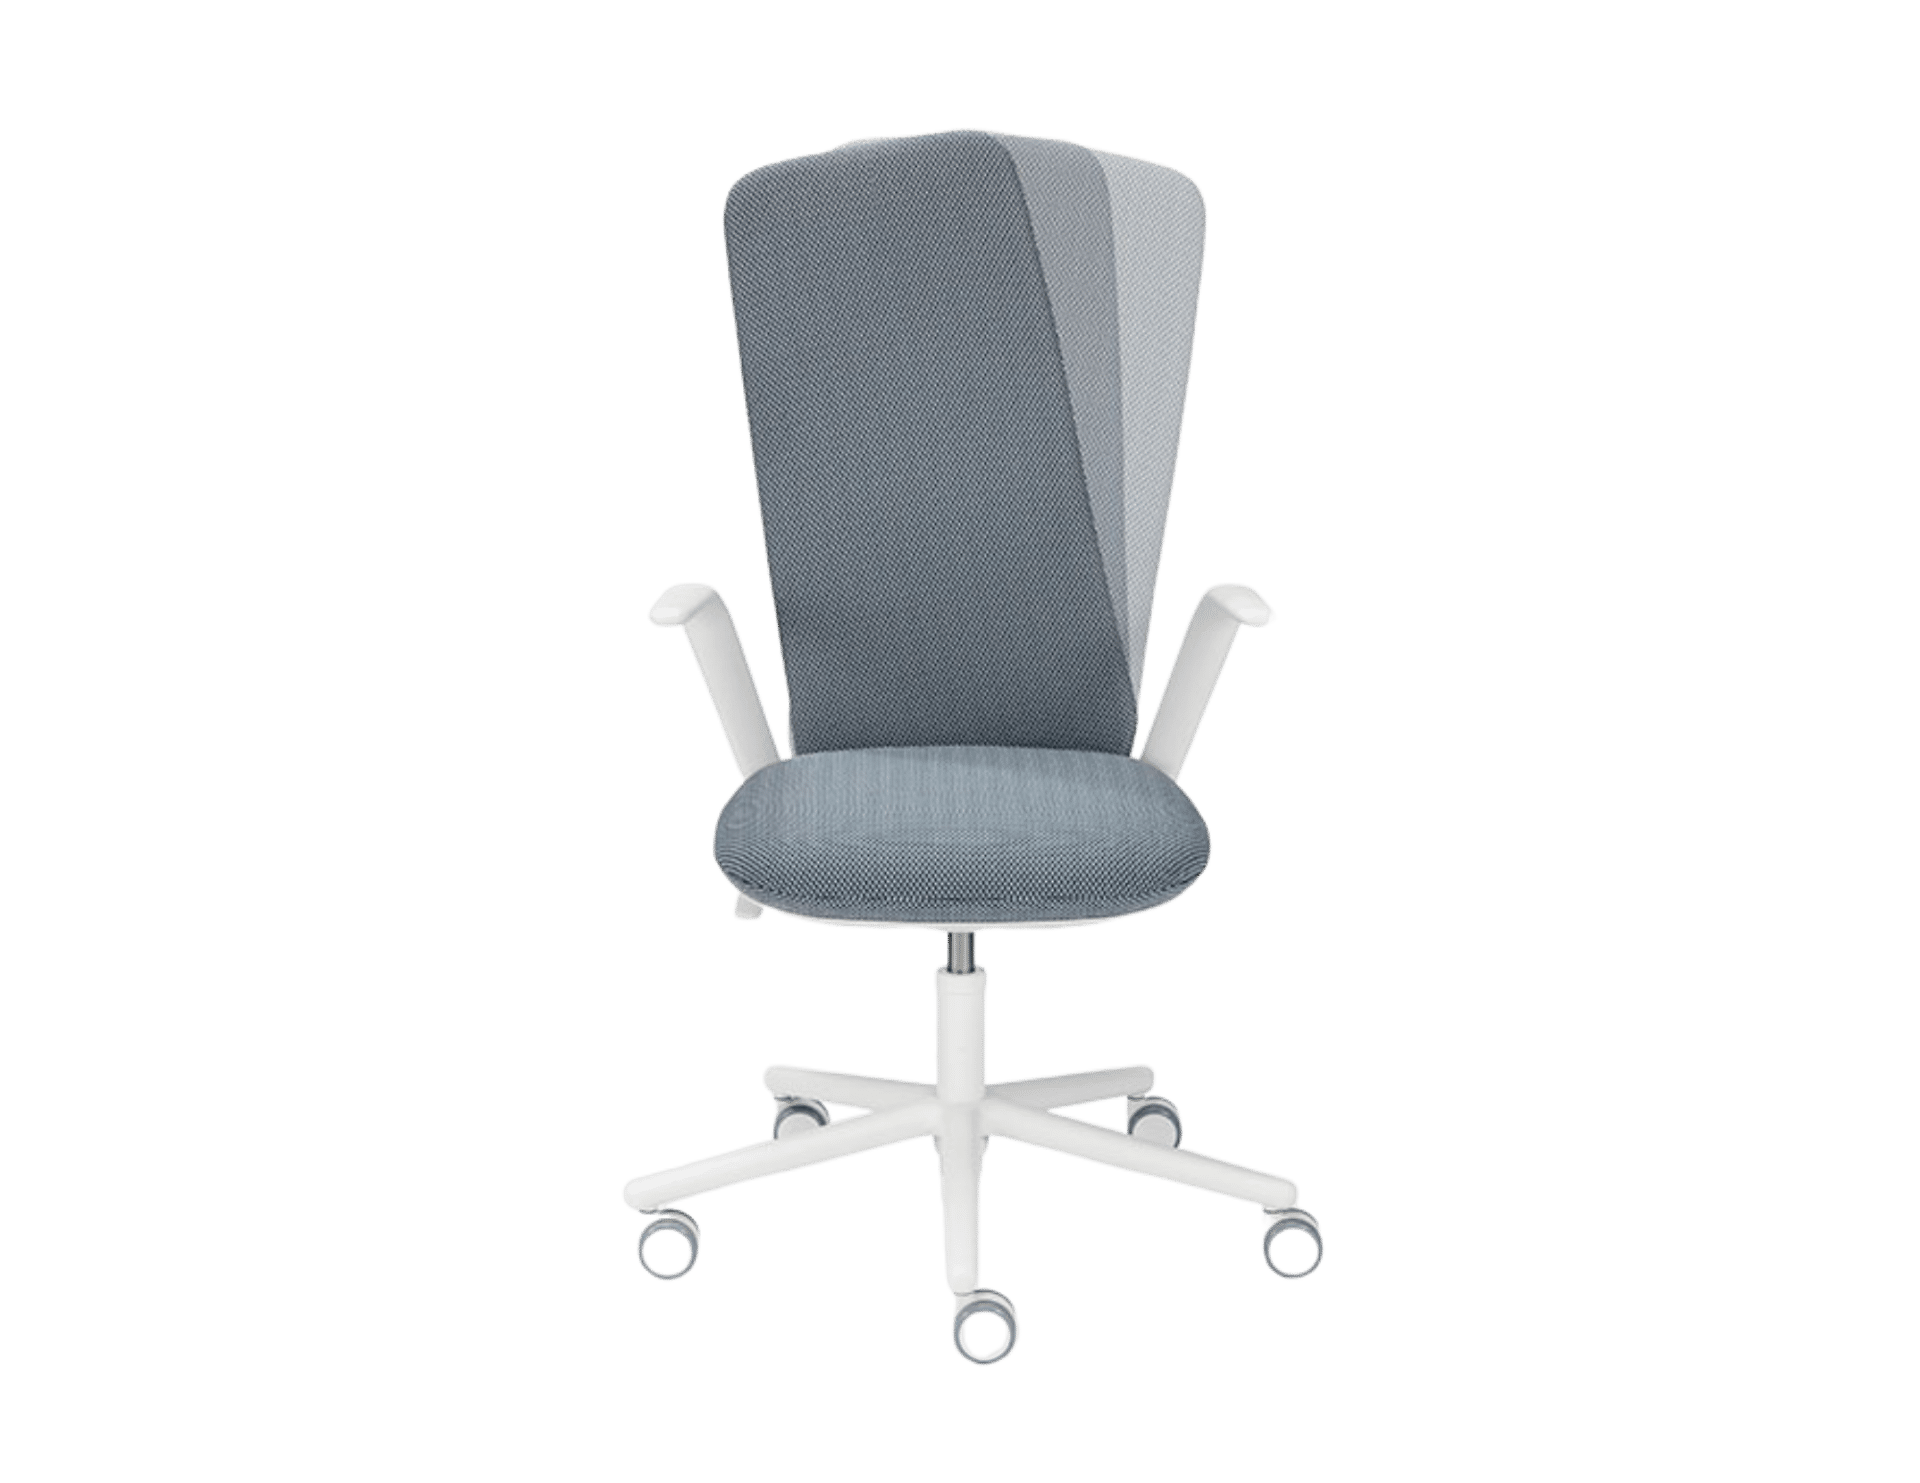 products_nia_chair_active_seating